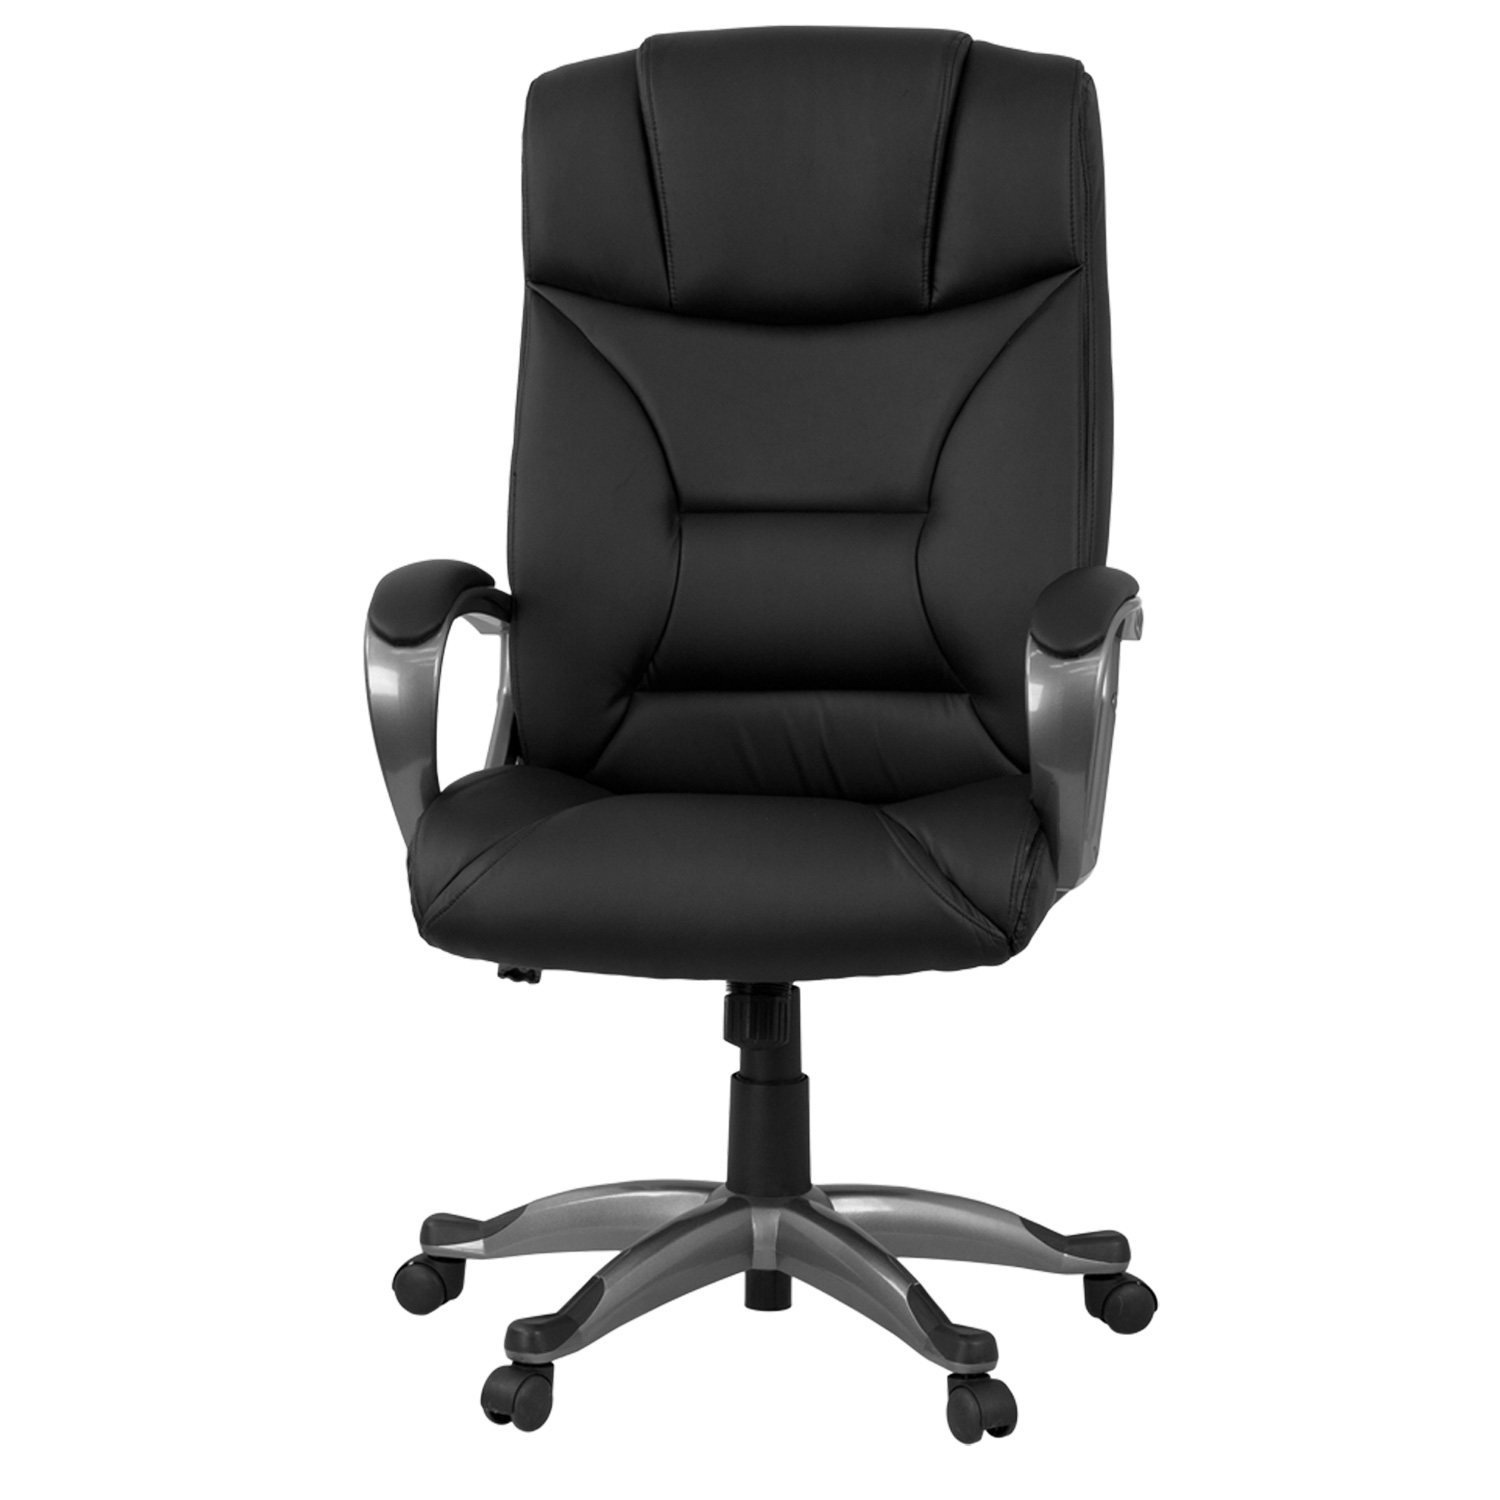 Flash Furniture Leather Executive fice Chair Black Sam s Club